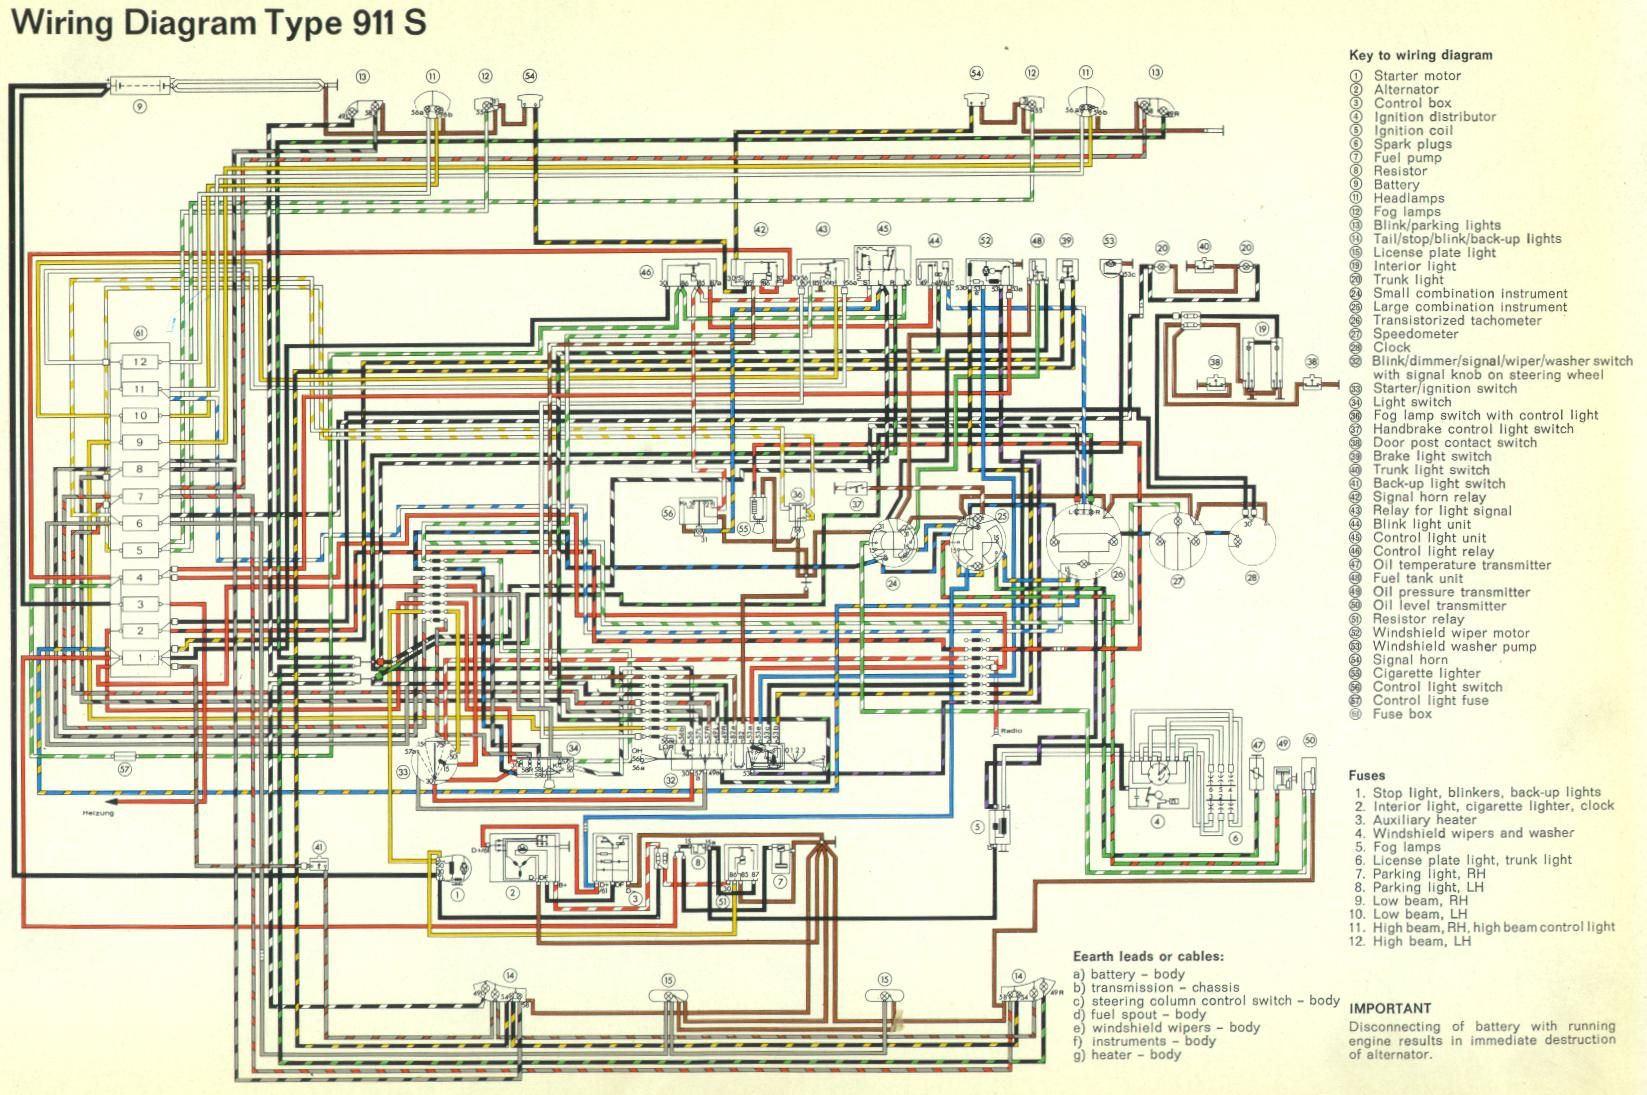 914 wiring diagram 1974 74 in porsche 914 pinterest diagram rh pinterest  com Wiring-Diagram Software Porsche 911 Engine Diagram